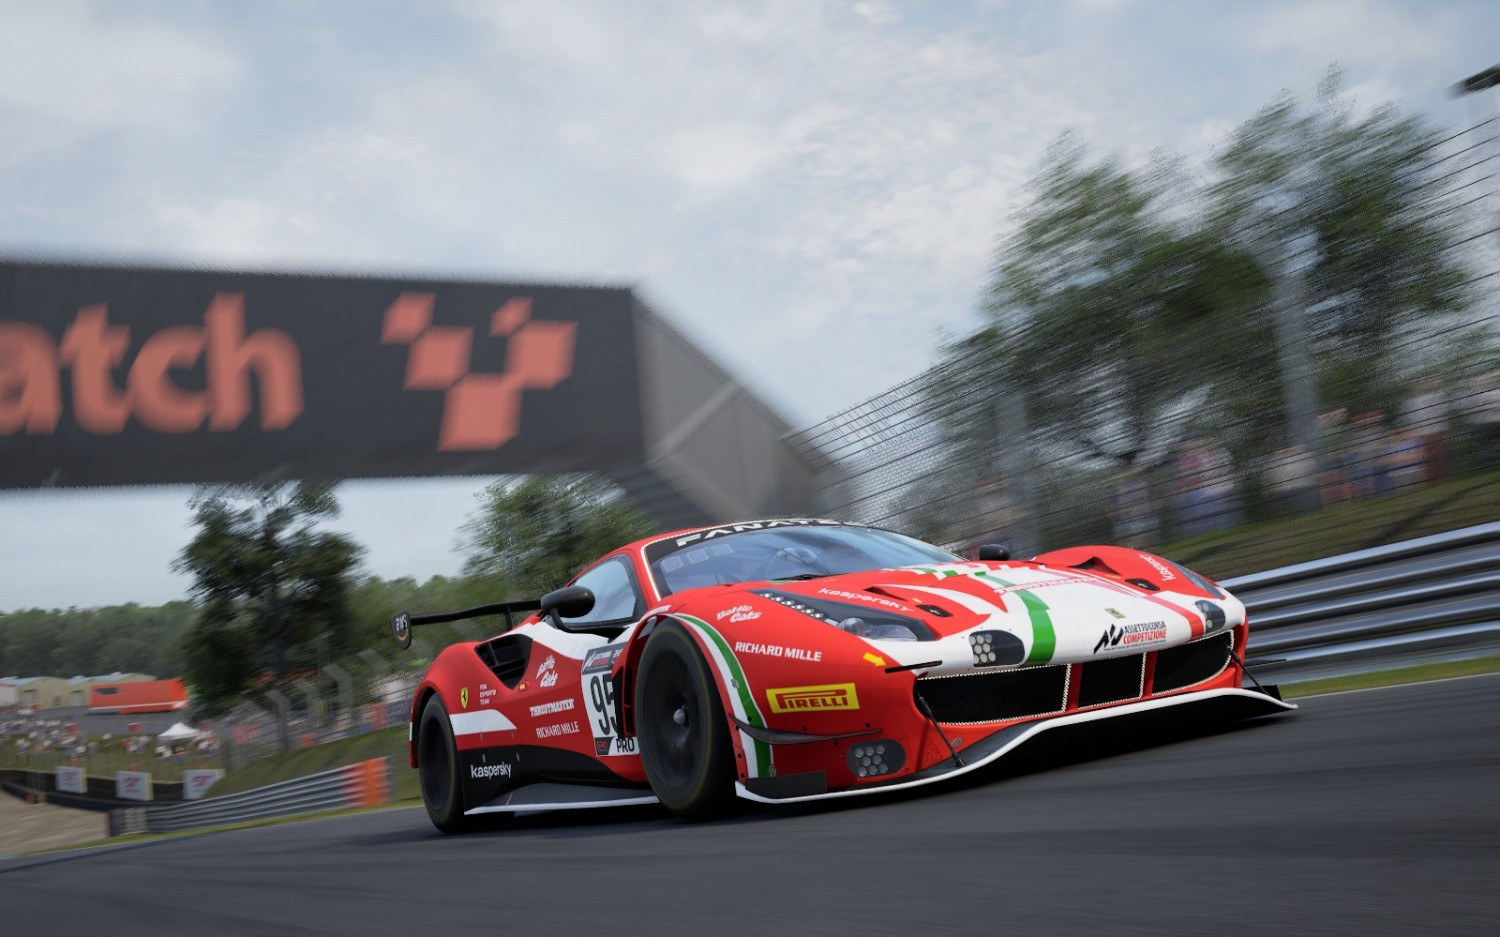 ESPORTS: Tonizza takes commanding championship lead with third win in four Sprint Series races